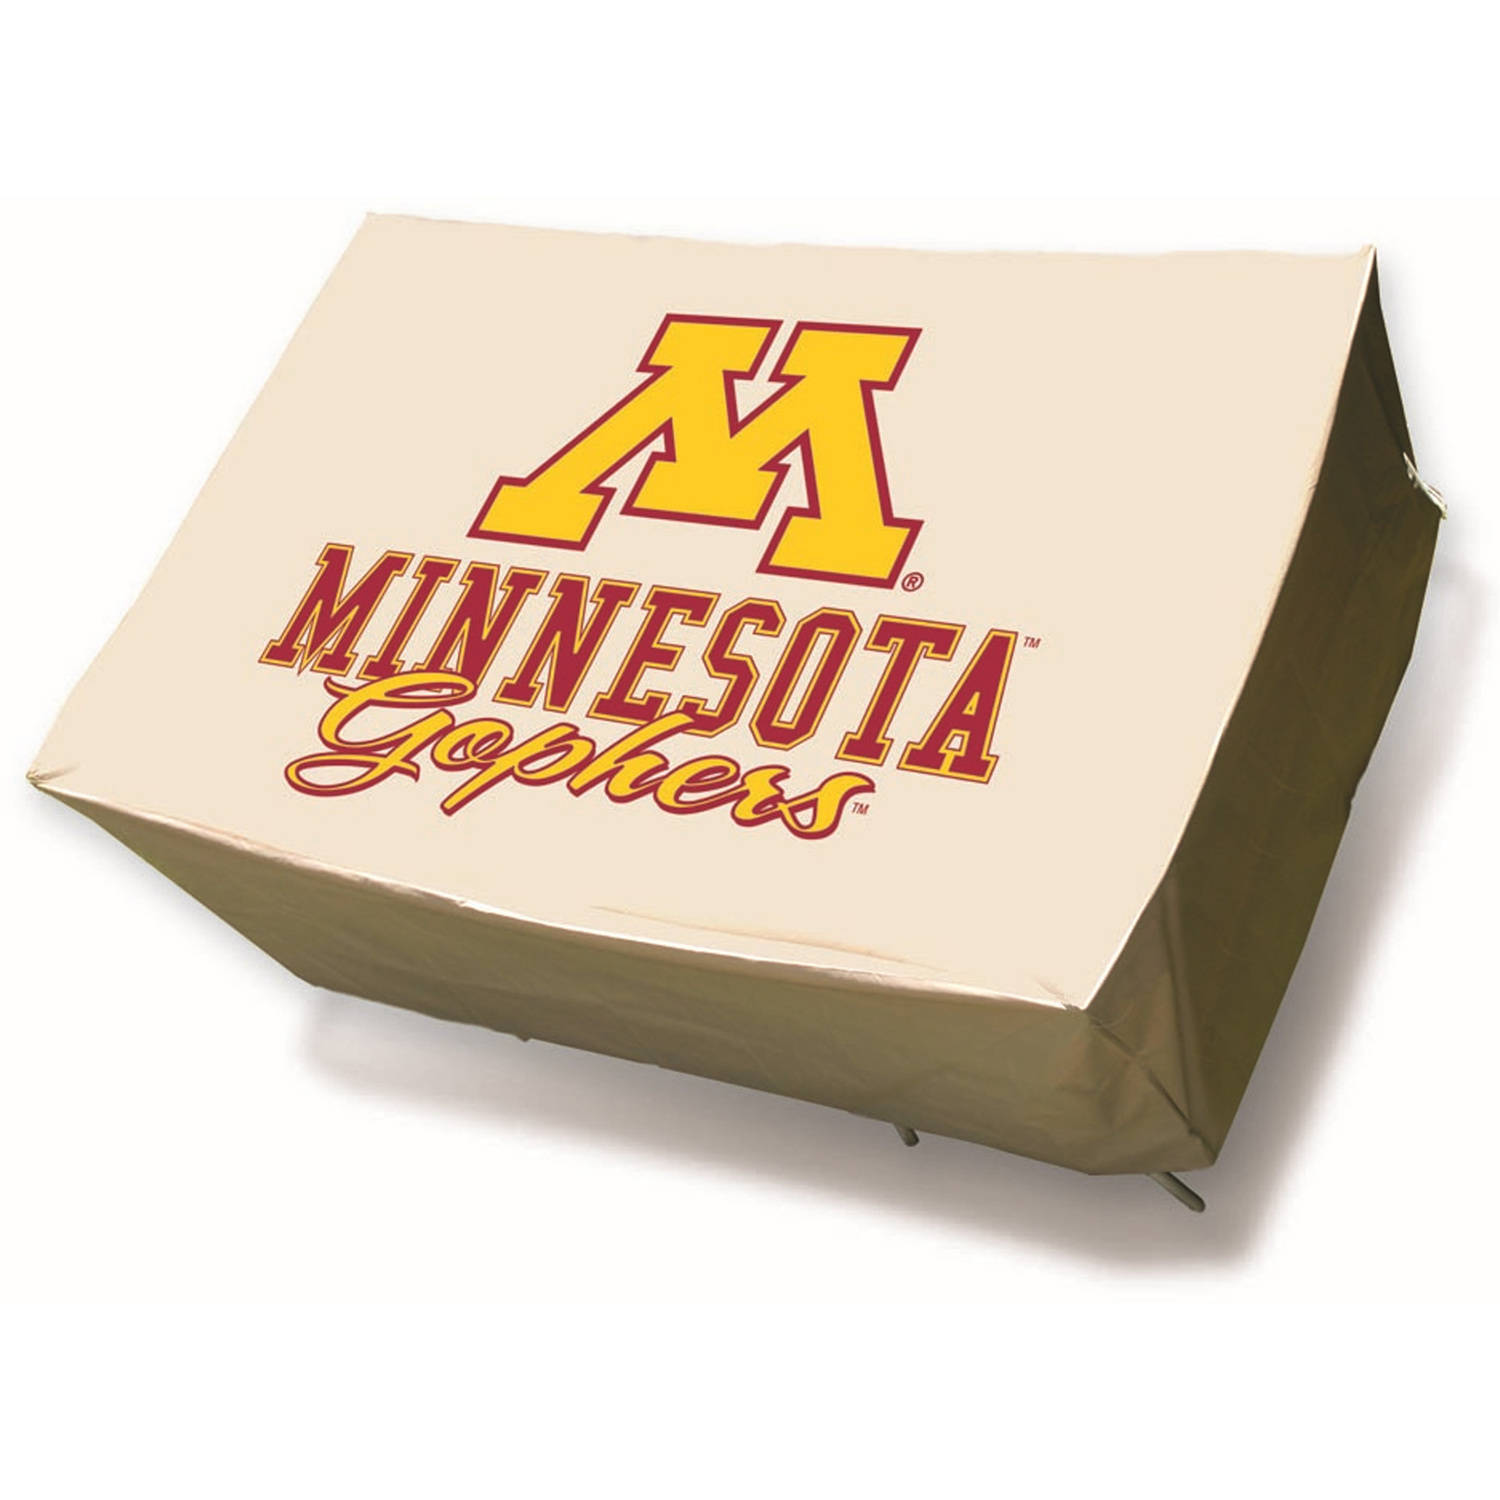 NCAA Mr. Bar-B-Q Rectangle Patio Table Cover, University of Minnesota Golden Gophers